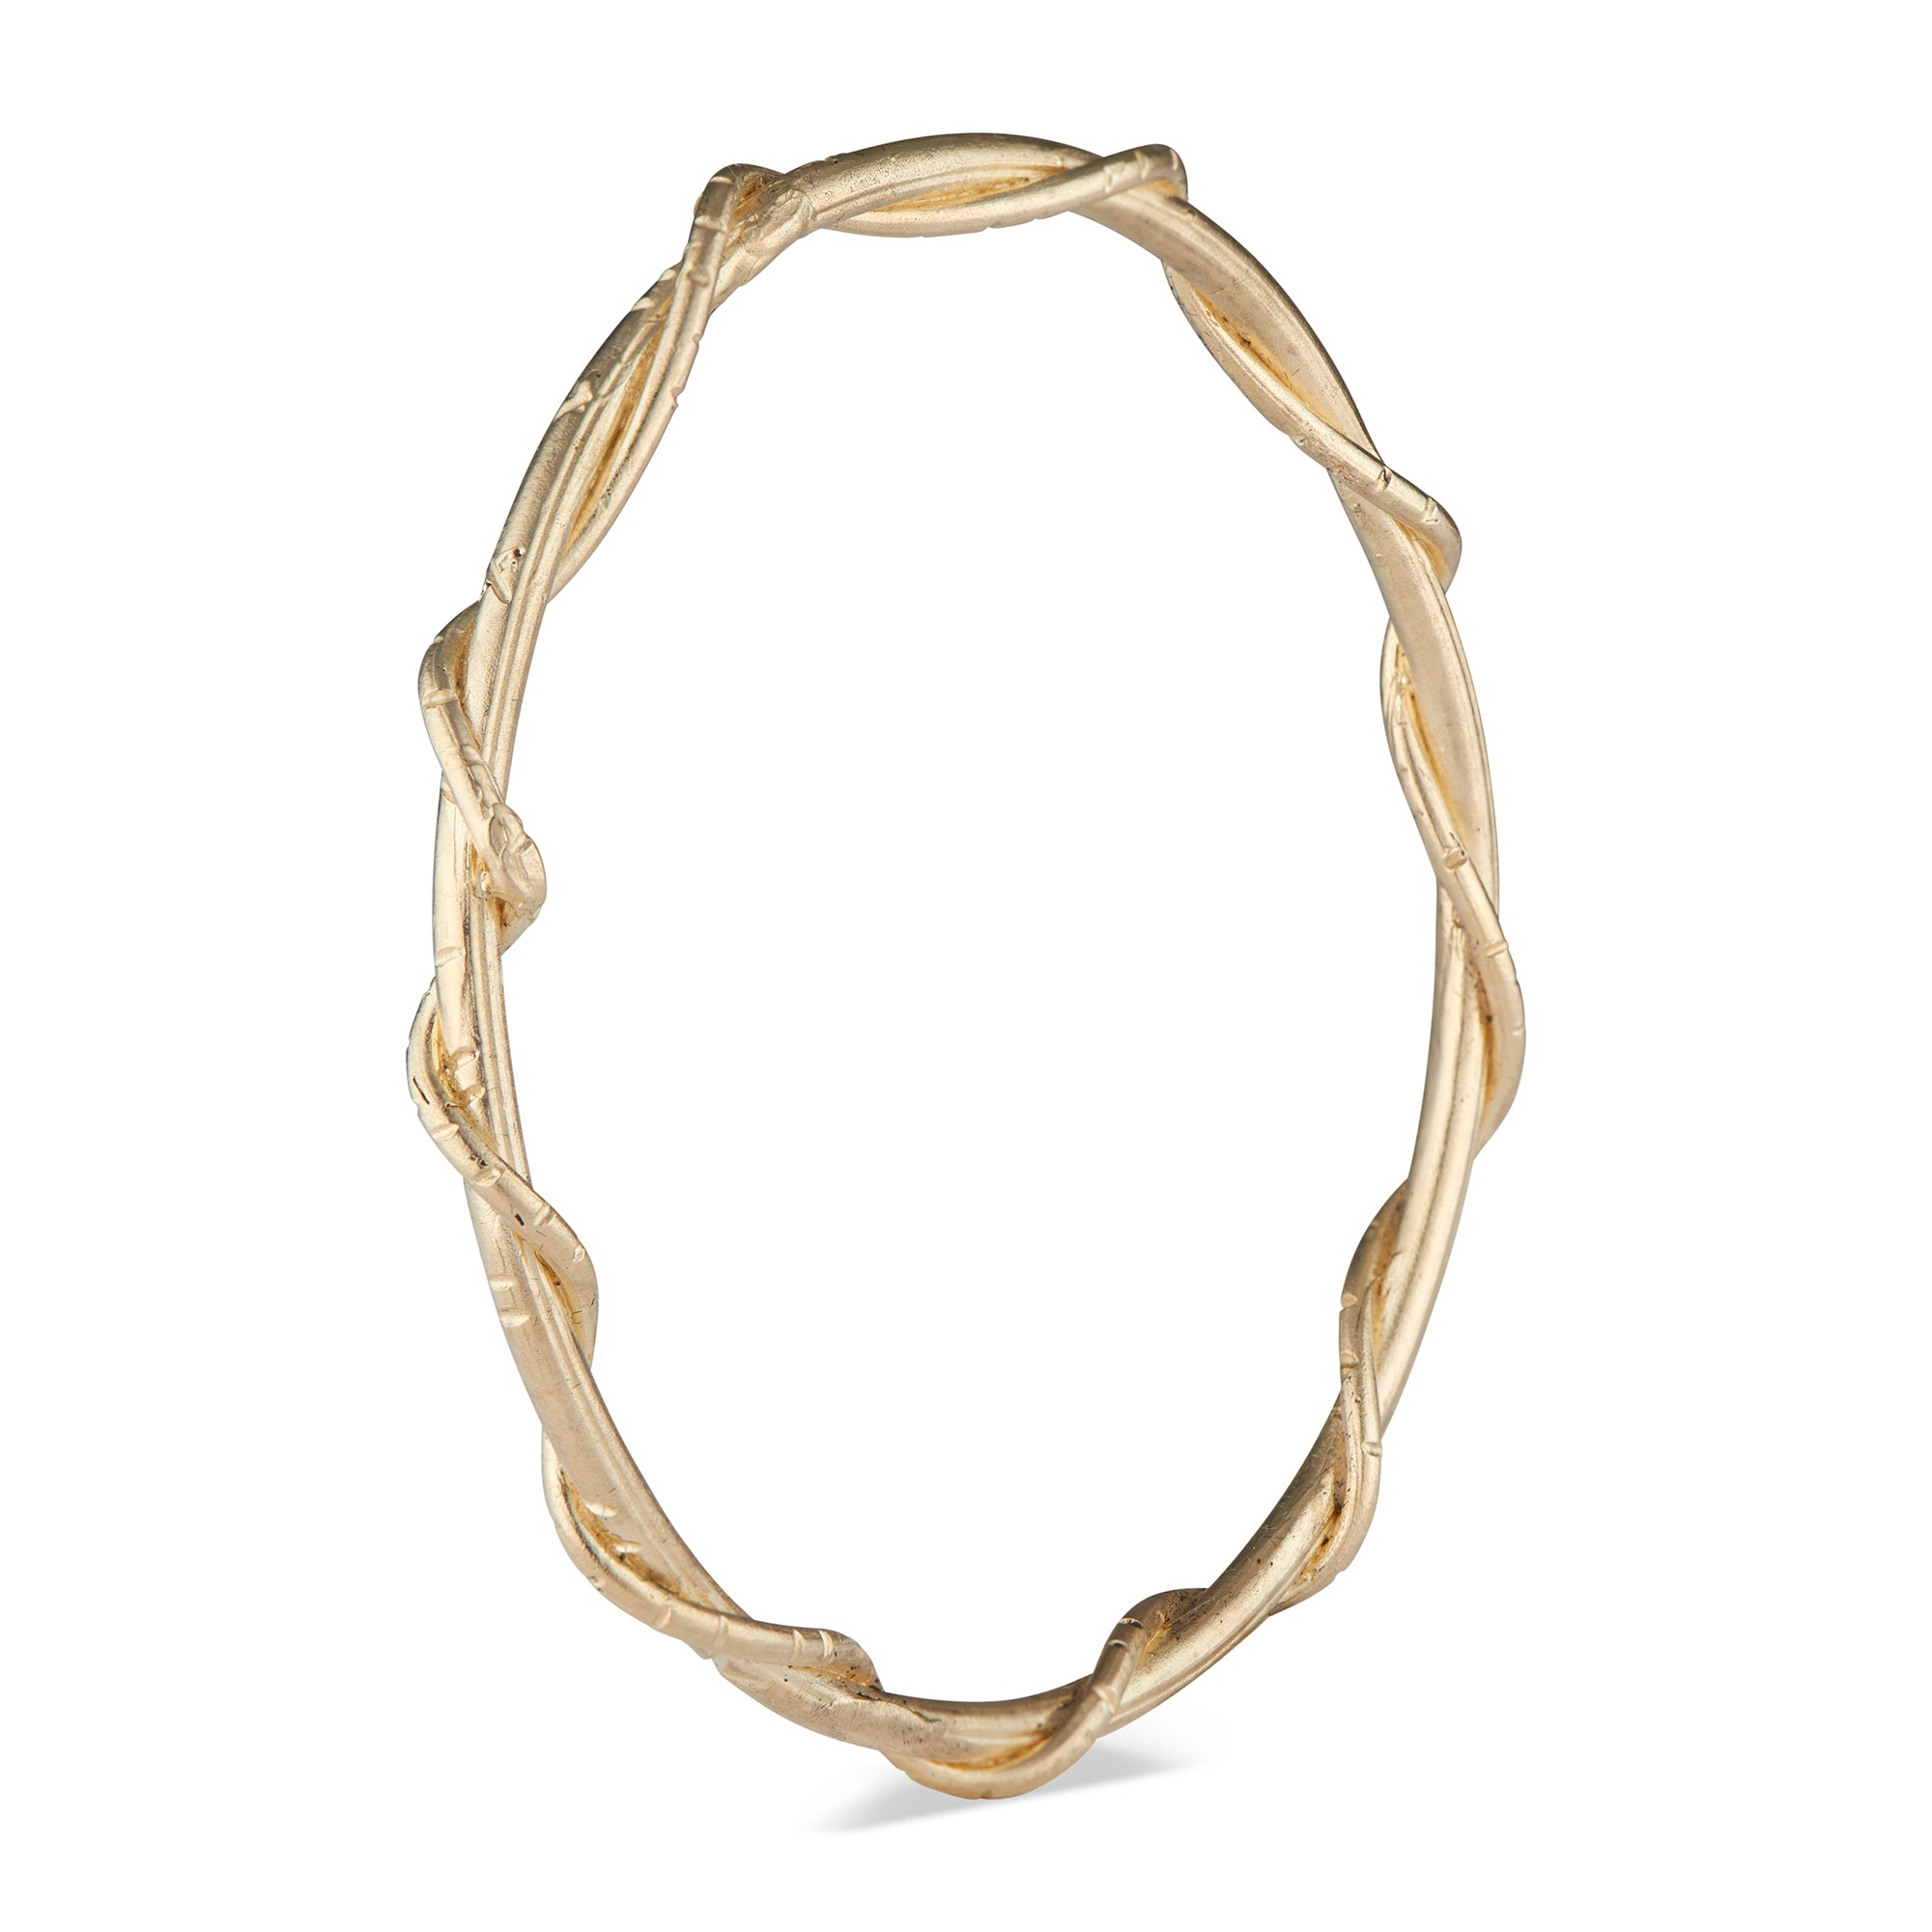 The Natalie McMillan 14k Gold Marina Bangle is a beautiful sculpturesque piece of jewelry that is sure to be on your wrist for years to come.